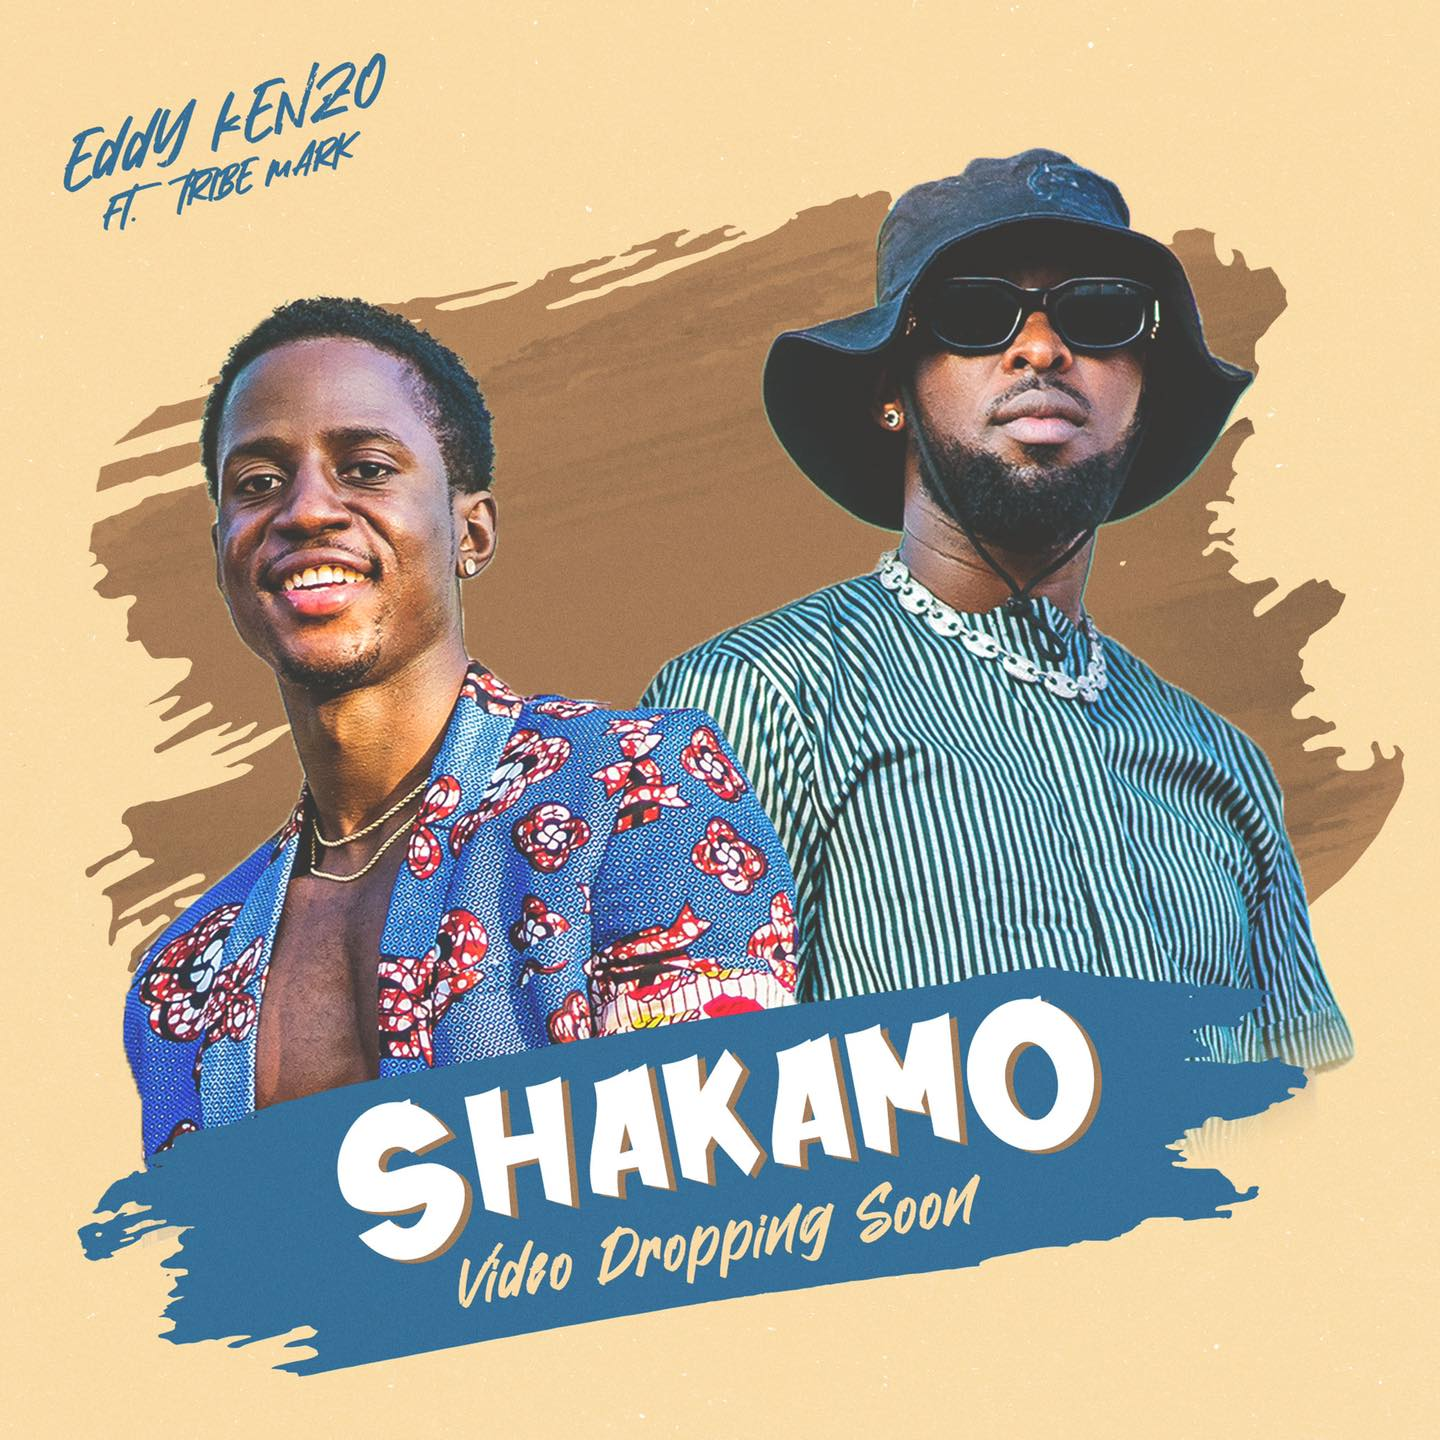 Made In Africa Album - Shakamo mp3 Download by Eddy Kenzo ft Tribe Mark. Shakamo free mp3 Download by Eddy Kenzo ft Tribe Mark